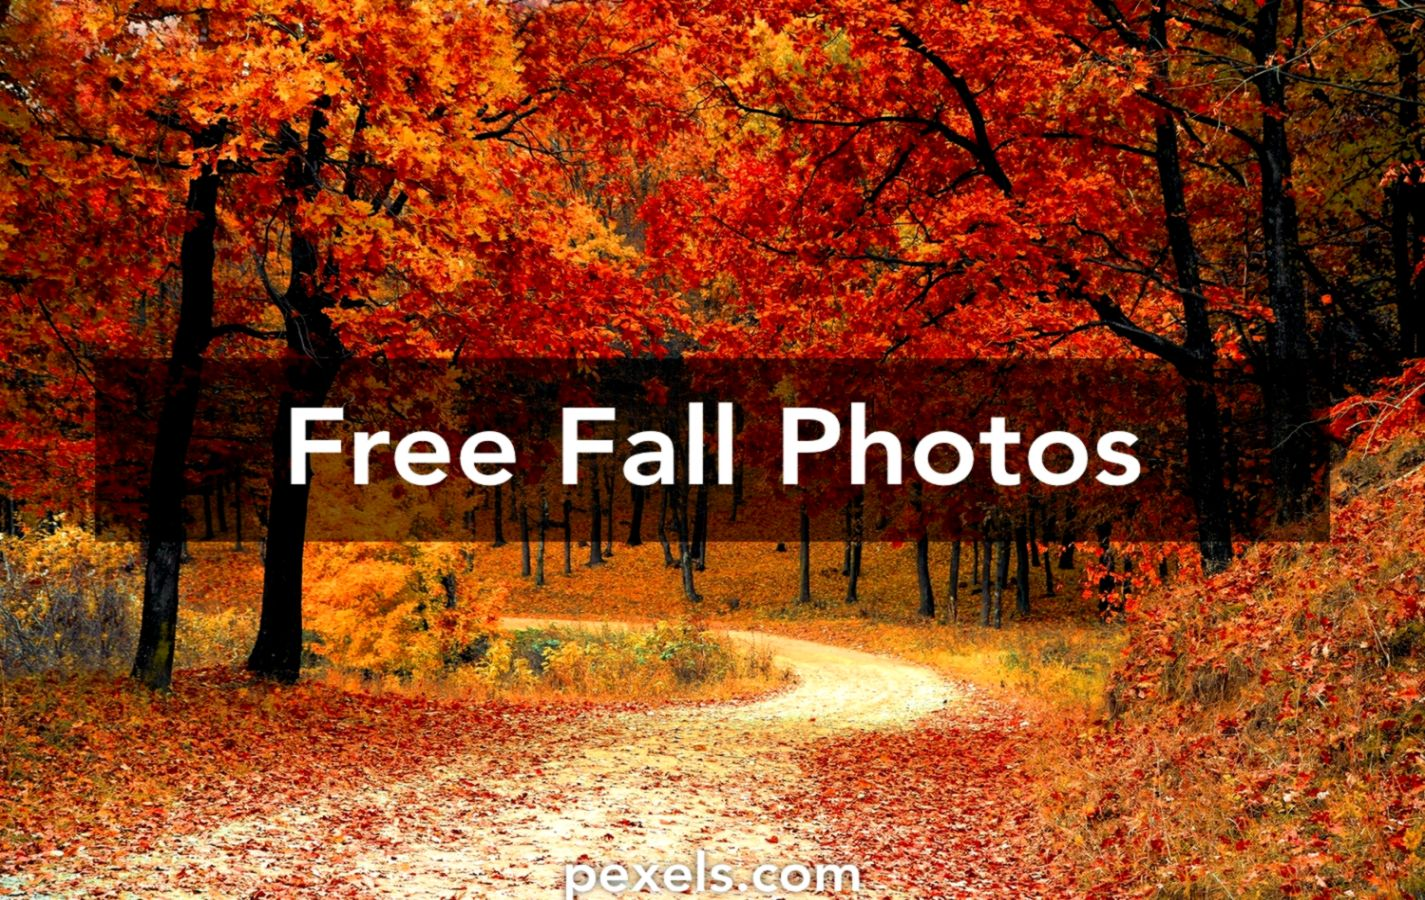 Free Fall Images For Desktop Posted By John Mercado